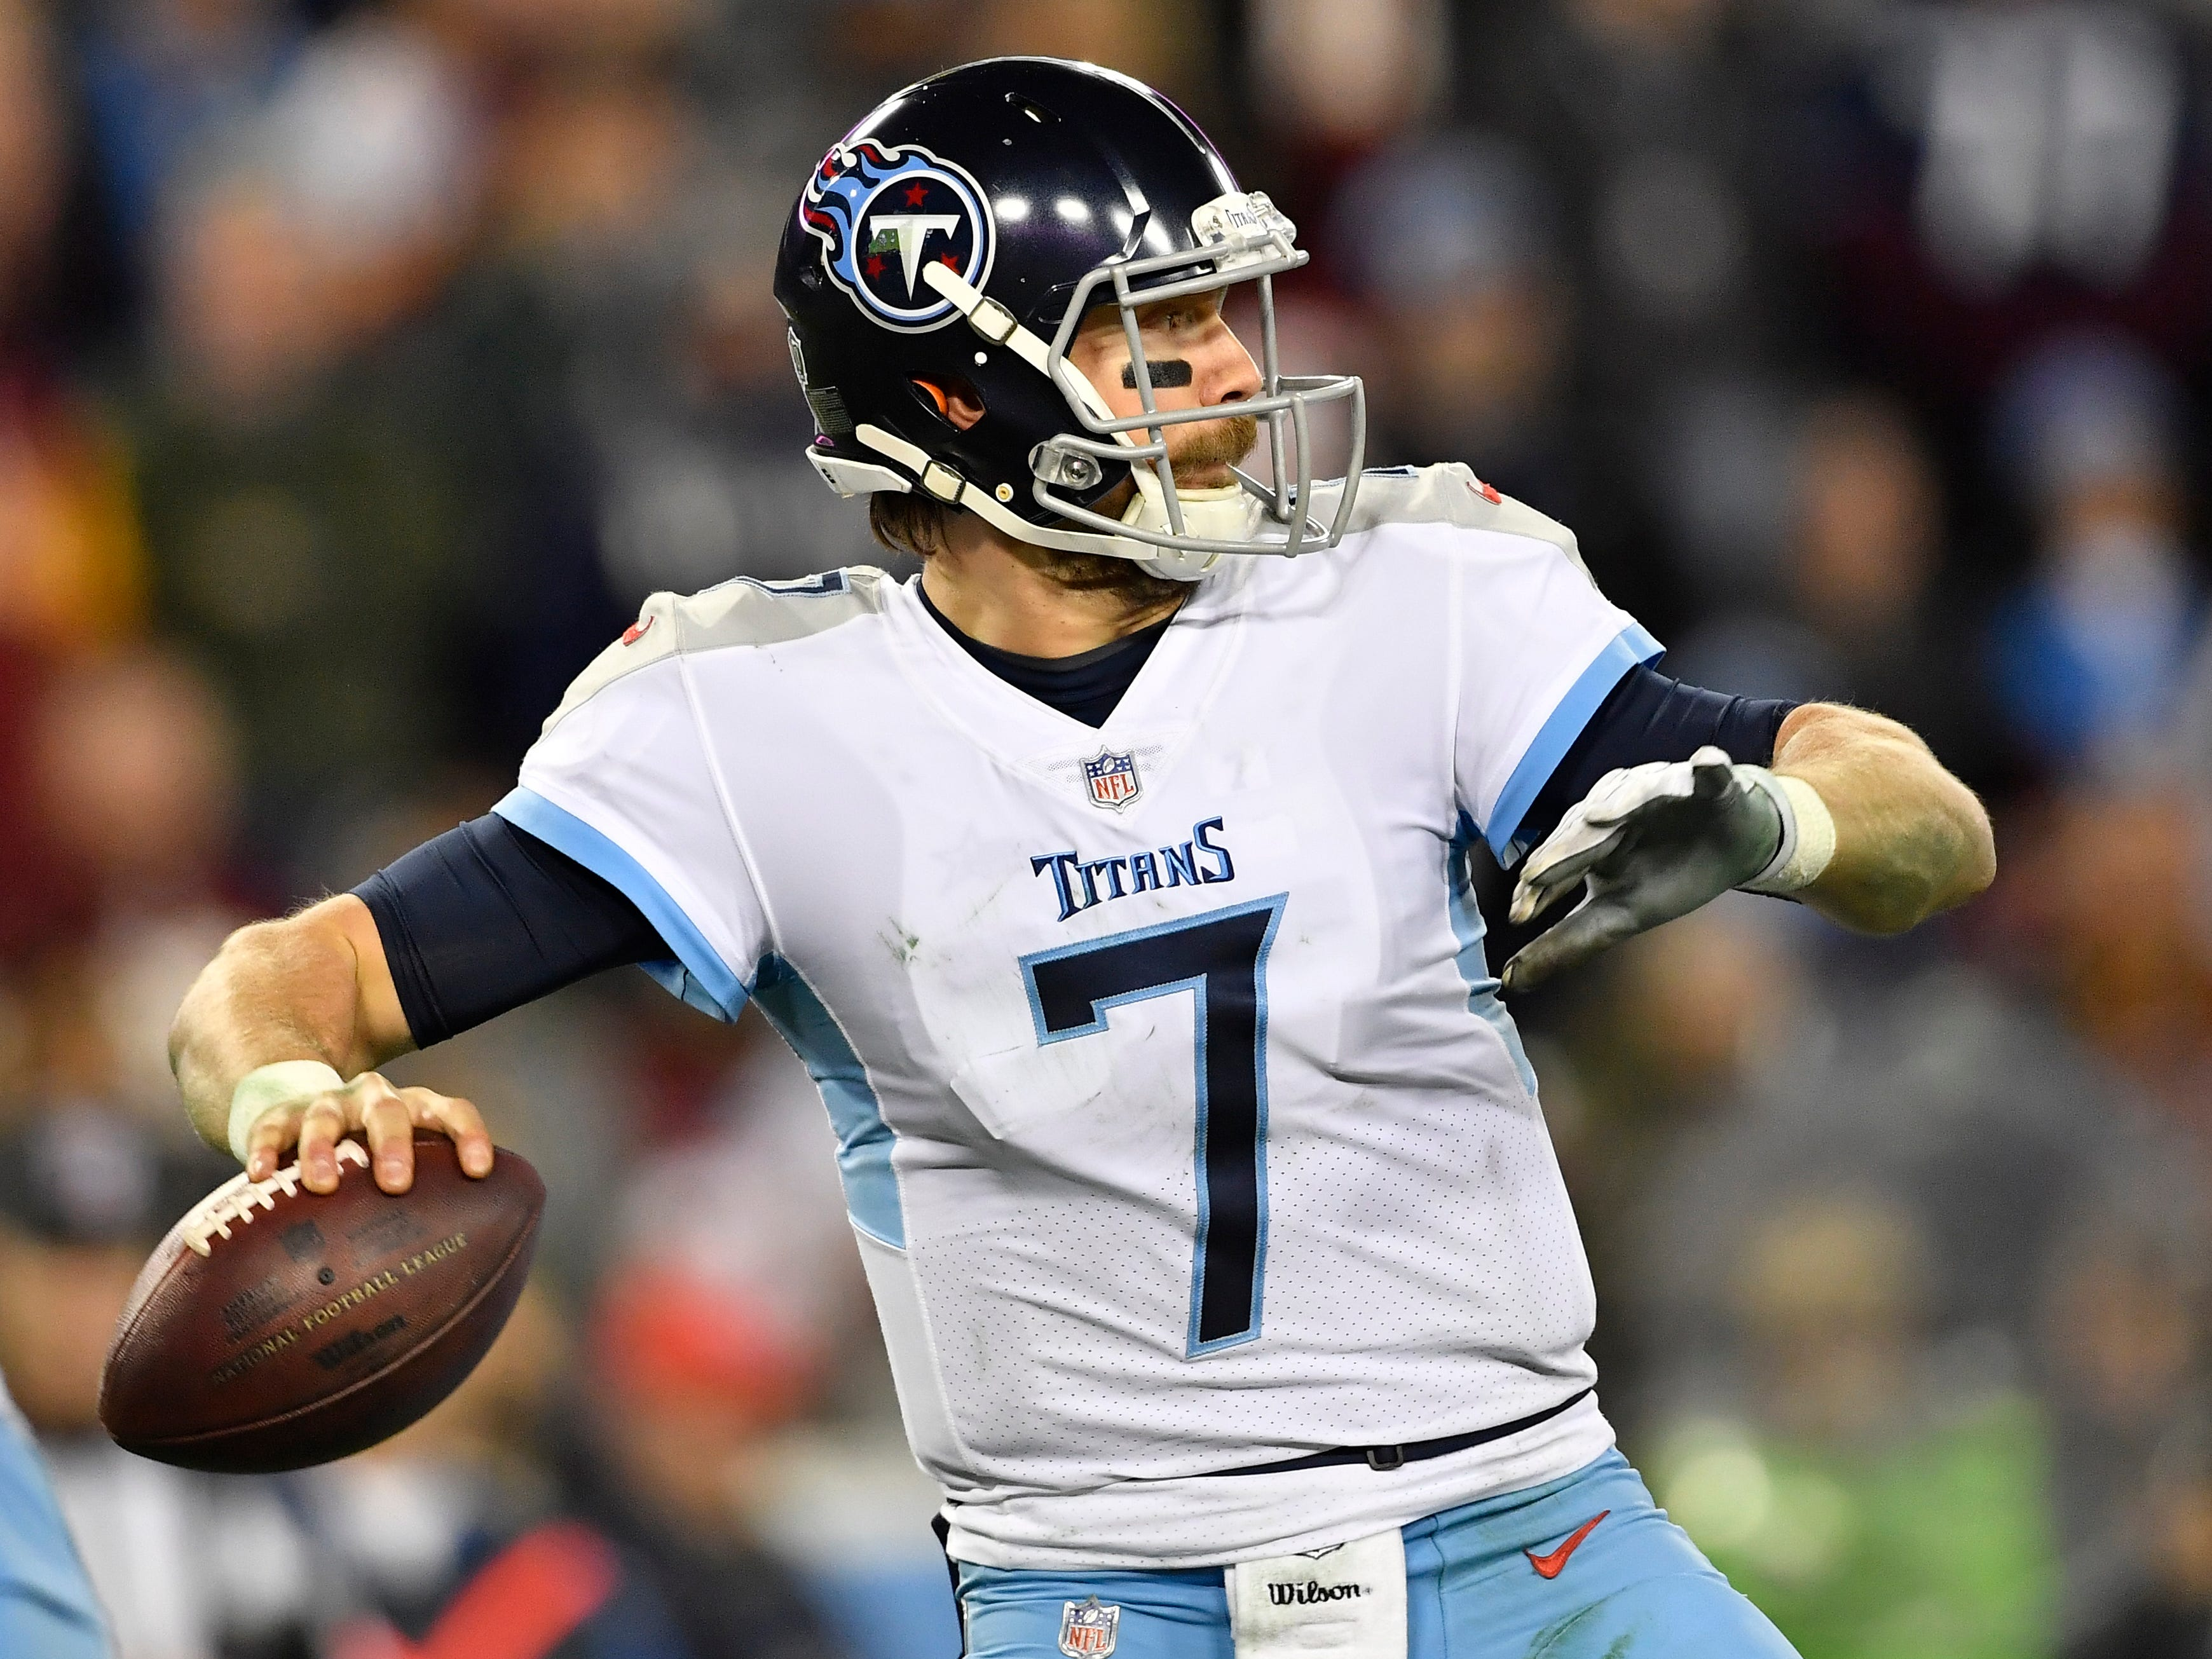 Titans quarterback Blaine Gabbert (7) passes in the second half against the Redskins at Nissan Stadium Saturday, Dec. 22, 2018, in Nashville, Tenn.